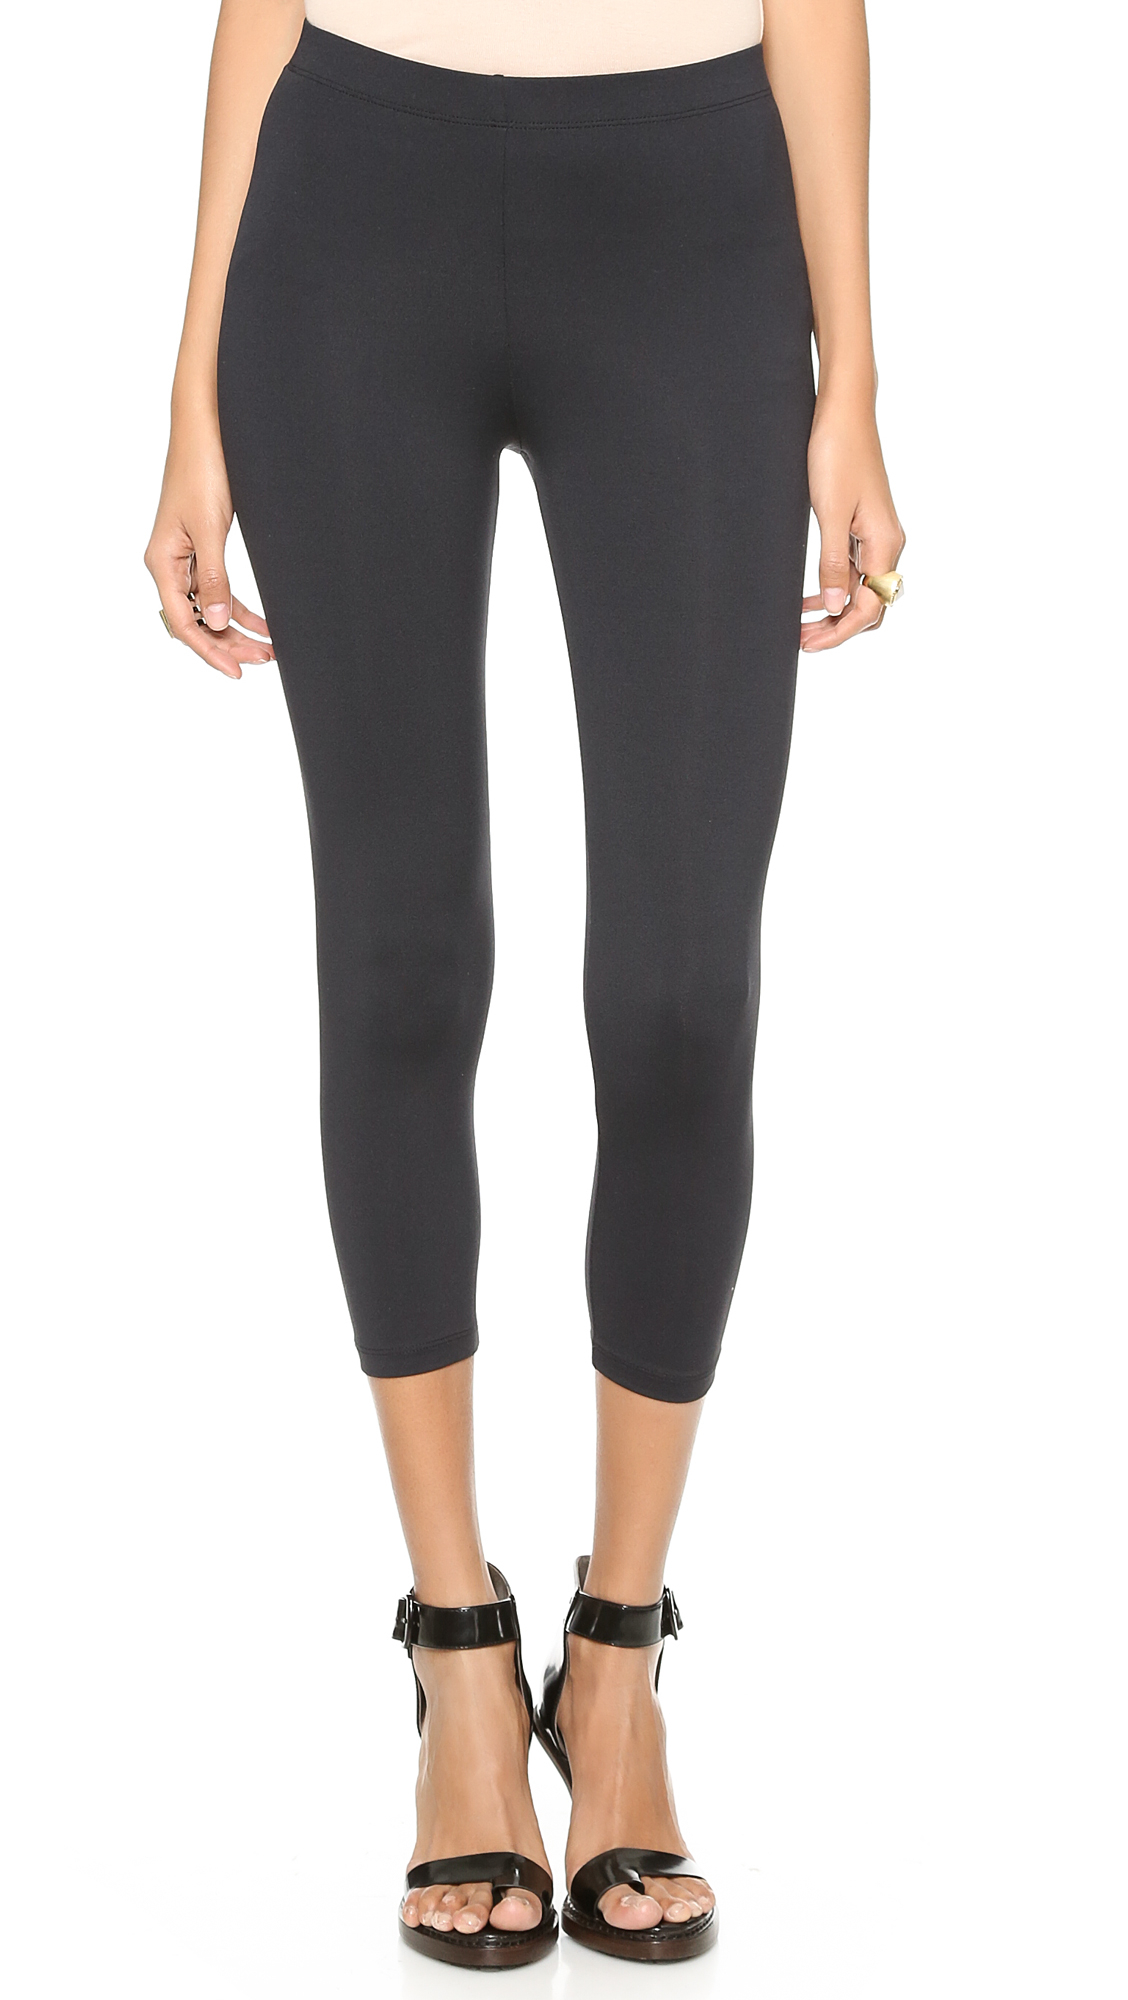 Shop black capri leggings at Neiman Marcus, where you will find free shipping on the latest in fashion from top designers.